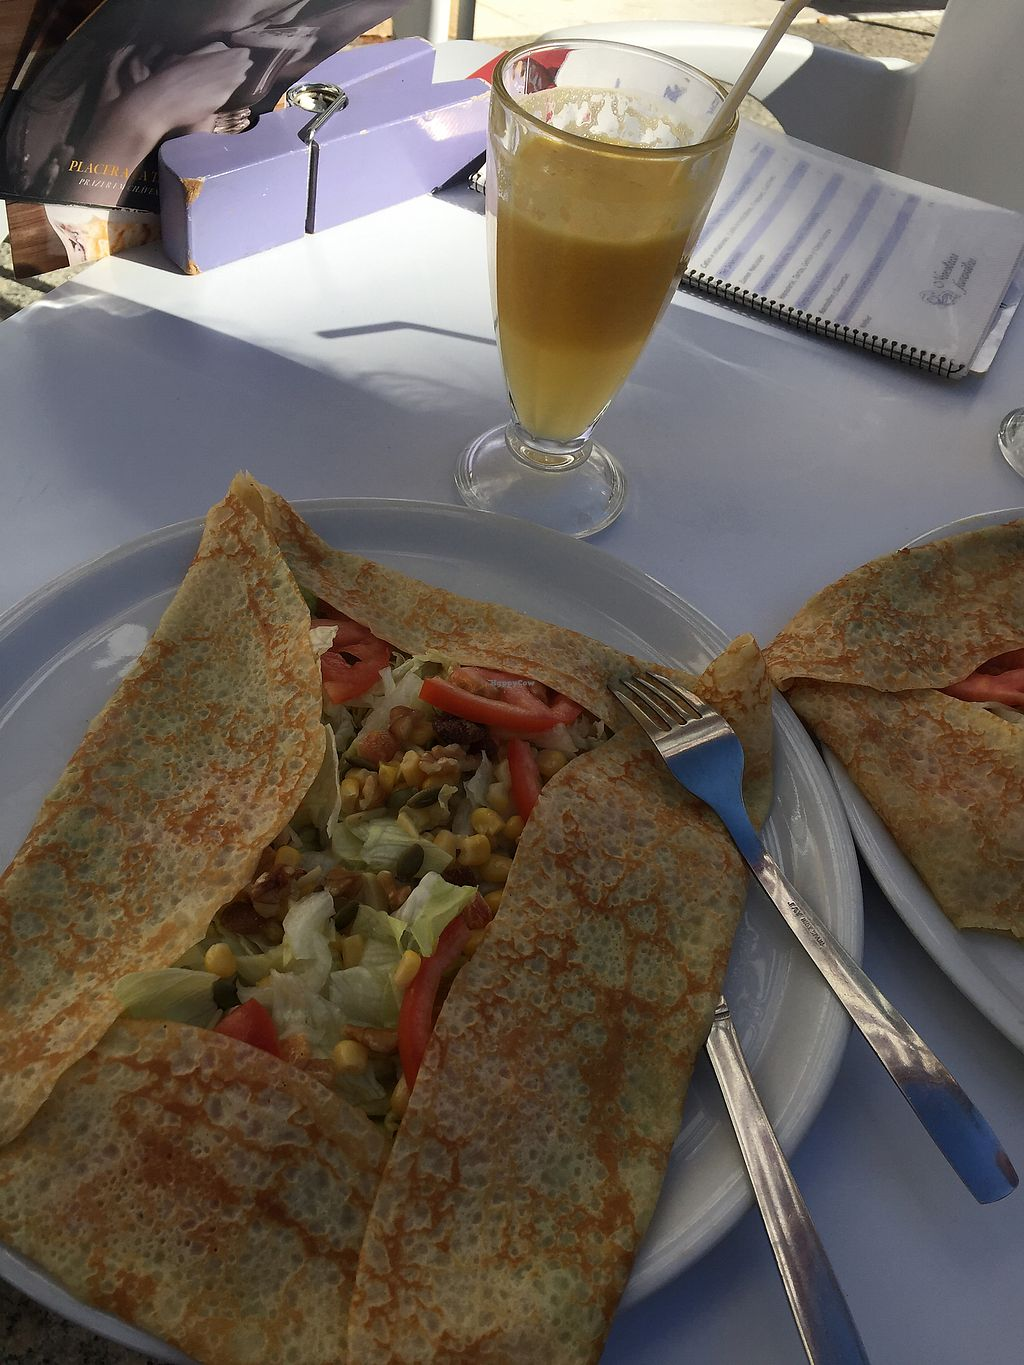 """Photo of Cafe de Agata  by <a href=""""/members/profile/AlexanderHindsberg"""">AlexanderHindsberg</a> <br/>Vegan Crepes & fresh orange juice with ginger <br/> December 22, 2017  - <a href='/contact/abuse/image/107703/338009'>Report</a>"""